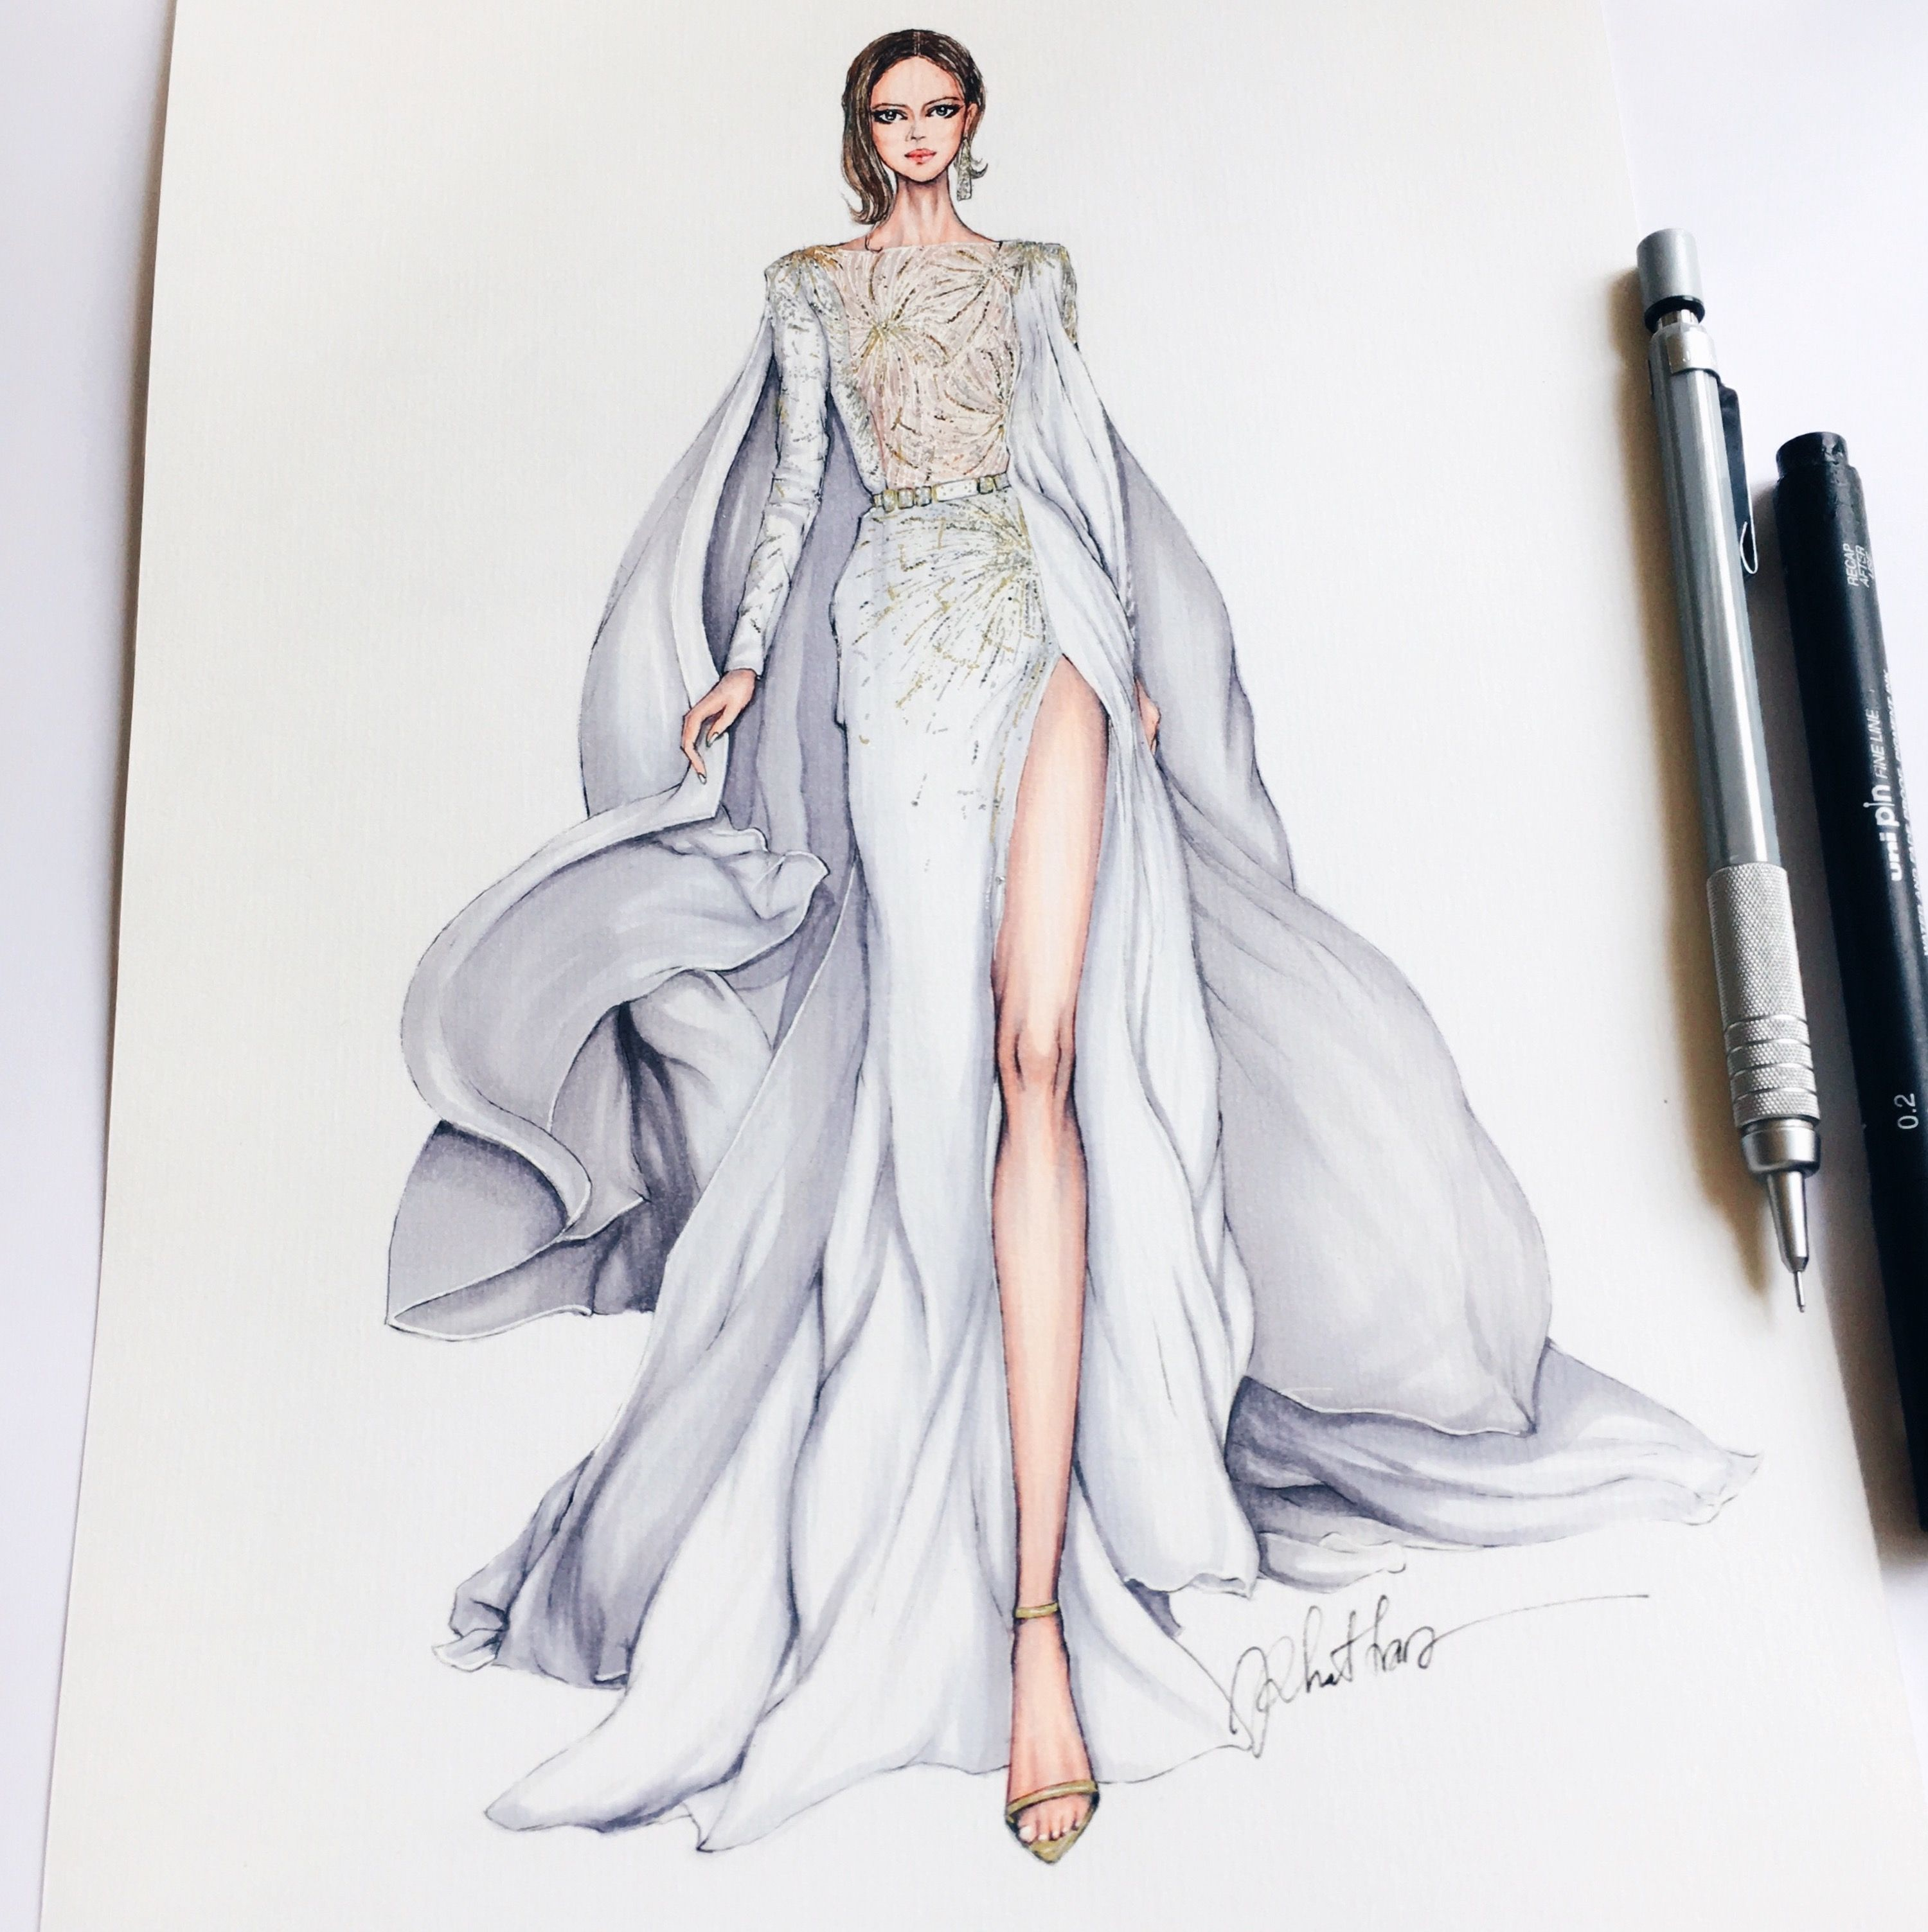 Buy Designers Fashion drawings pictures picture trends